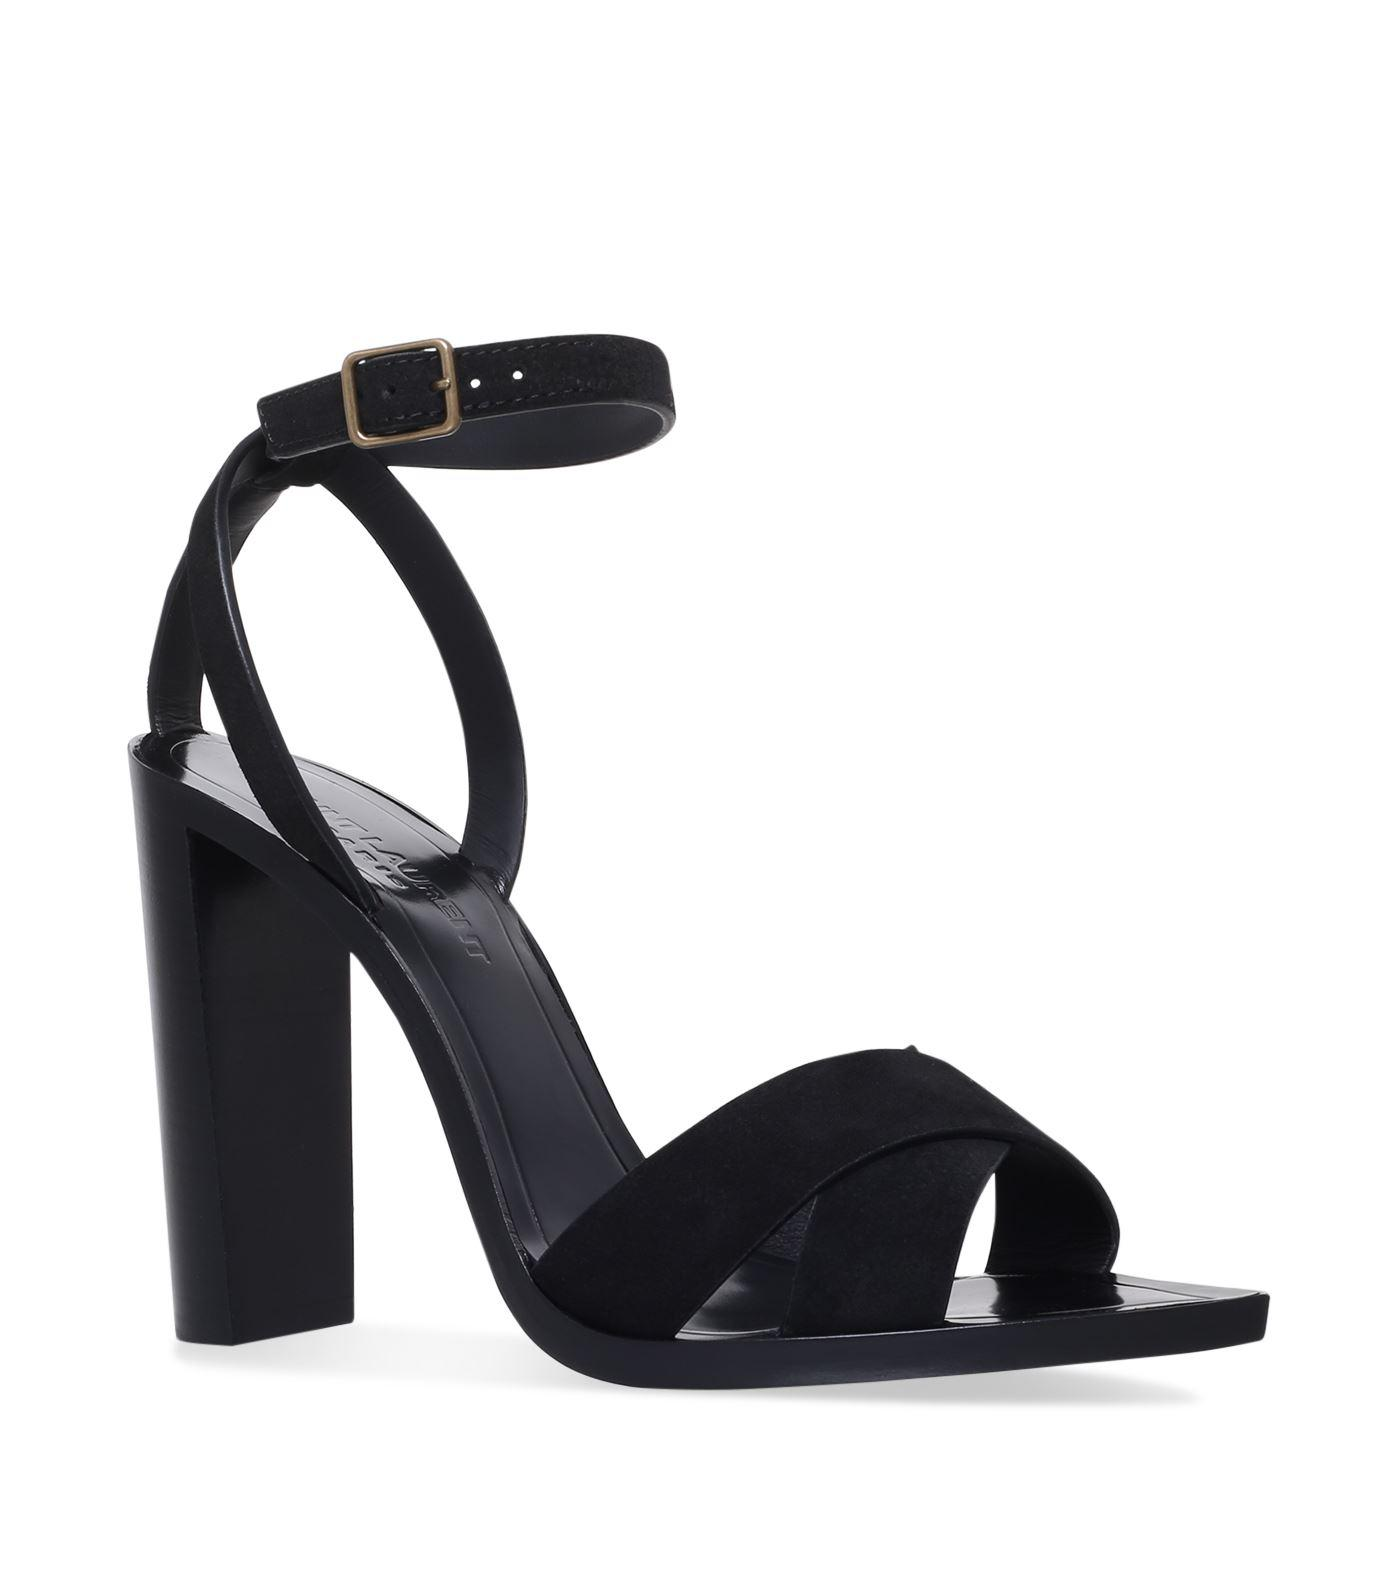 Tanger sandals - Black Saint Laurent